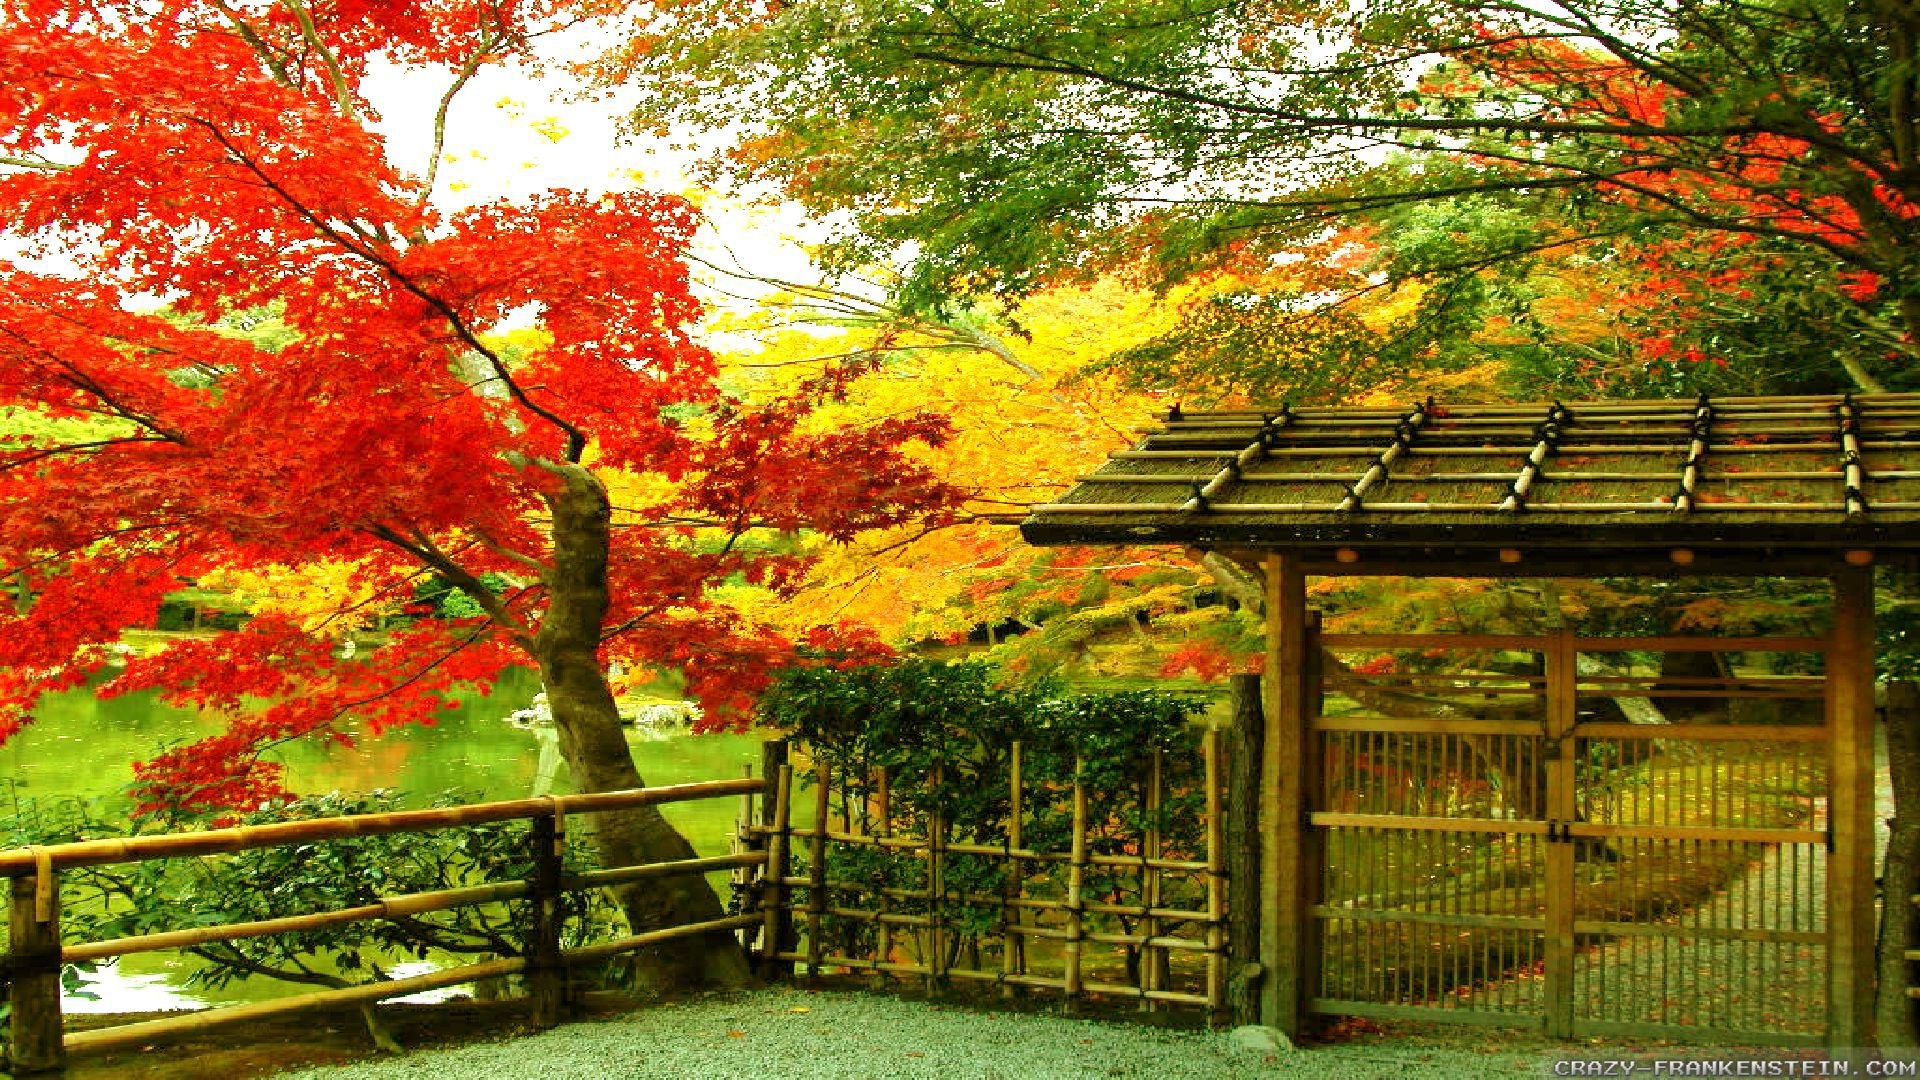 1920x1080 High Res Fall Wallpapers Autumn In Japan Wallpapers Seasonal Crazy Frankenstein